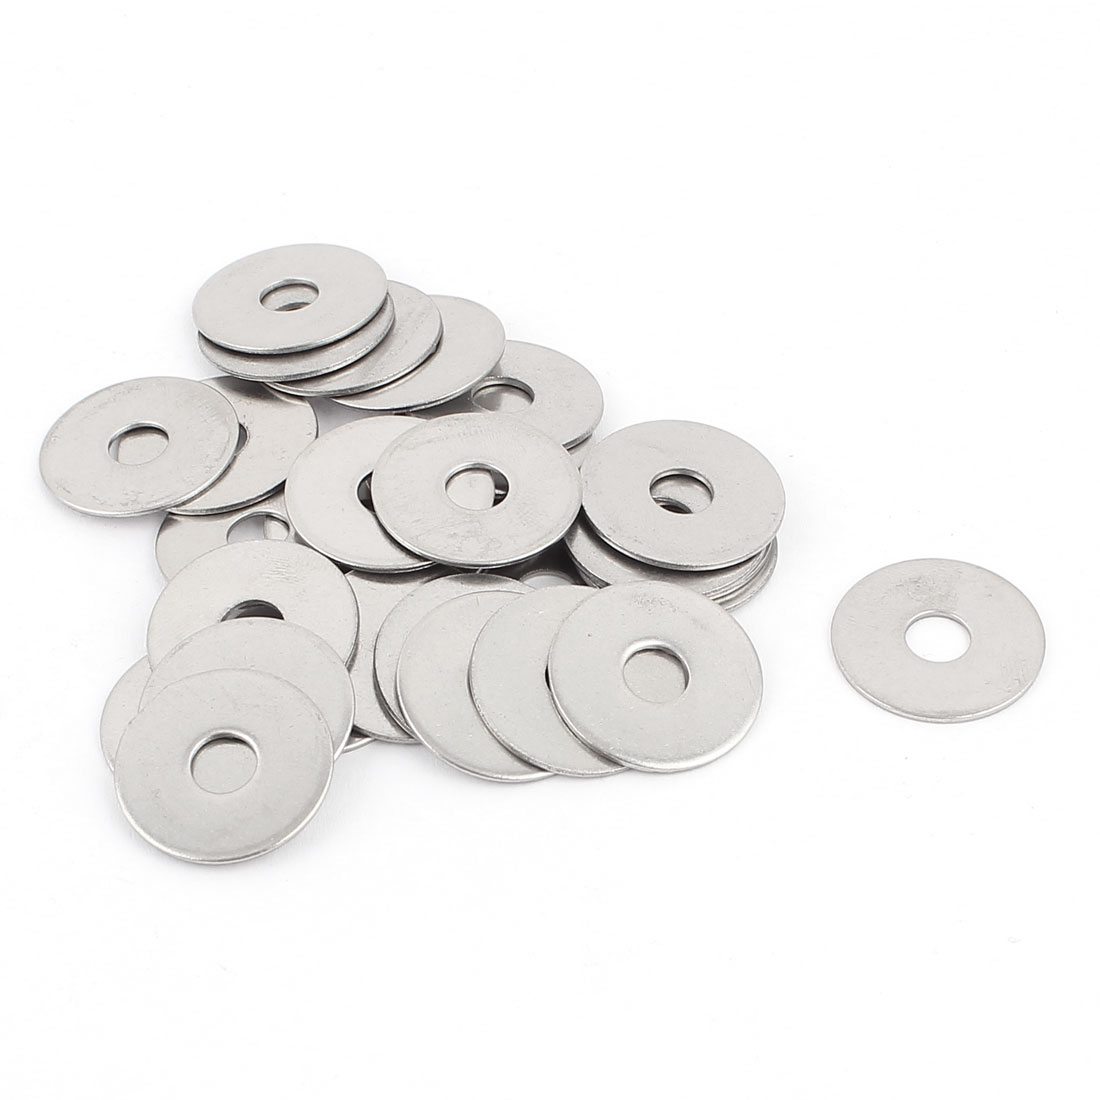 Screw Repair Part 6mm 304 Stainless Steel Flat Washers Spacers 30pcs